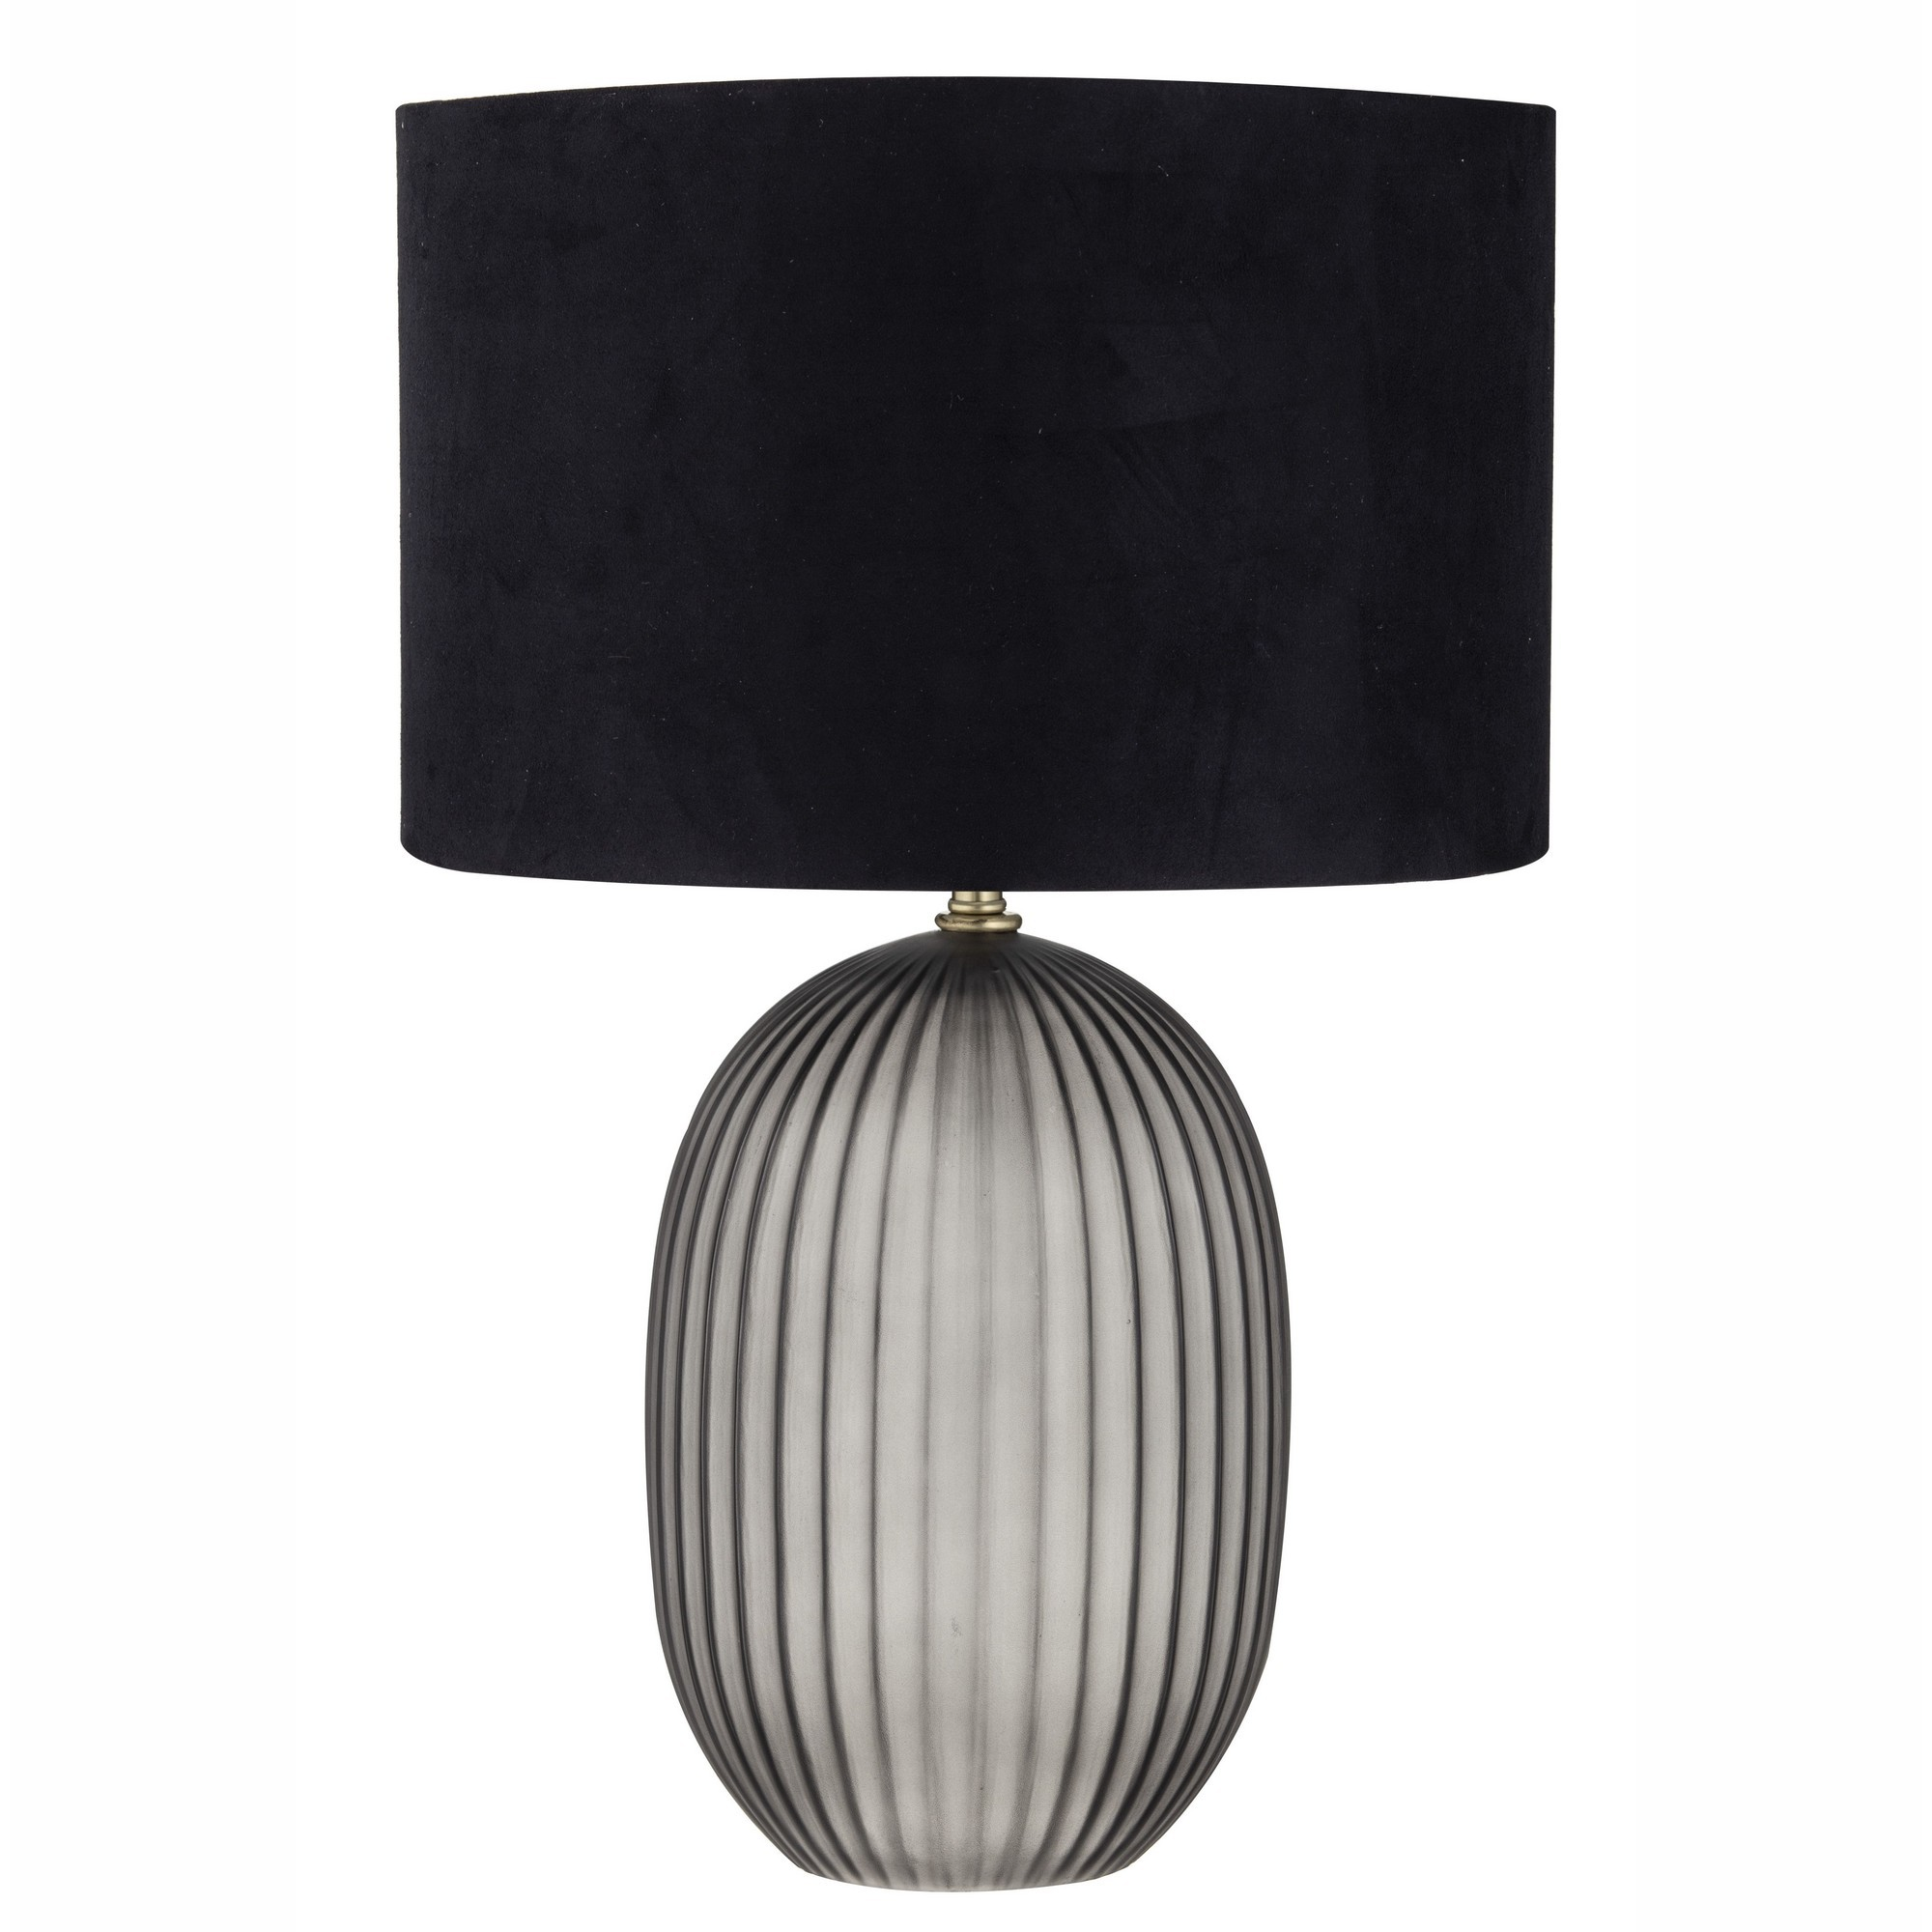 Aston Glass Table Lamp, Smoke / Black